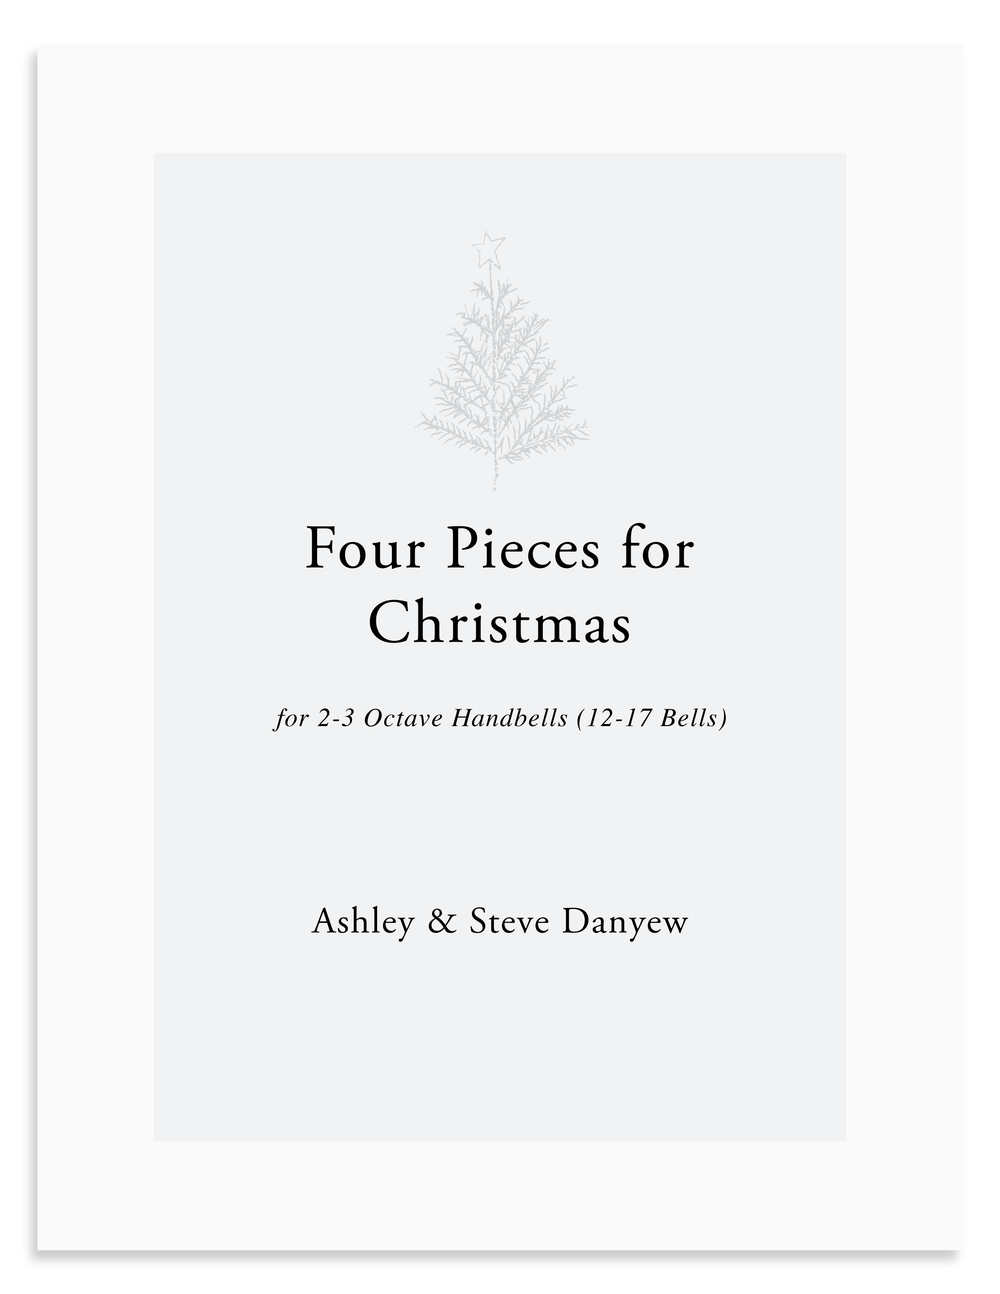 Four Pieces for Christmas - a digital collection for 2-3 octave handbells (12-17 bells).png